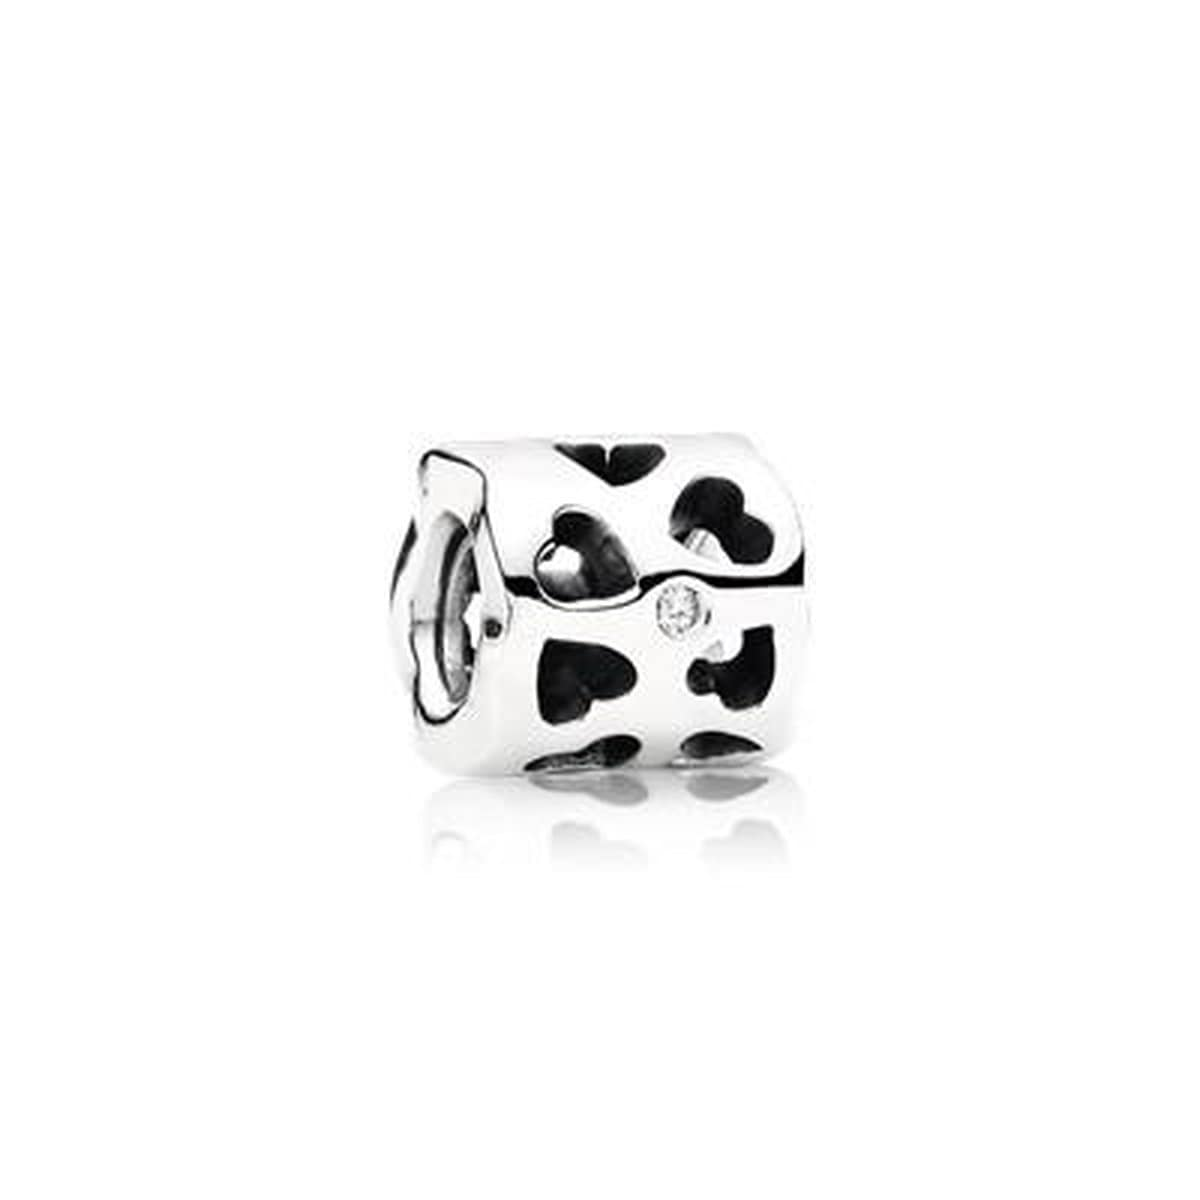 Tunnel of Love Sterling Silver Cubic Zirconia Charm - 790275CZ-Pandora-Renee Taylor Gallery